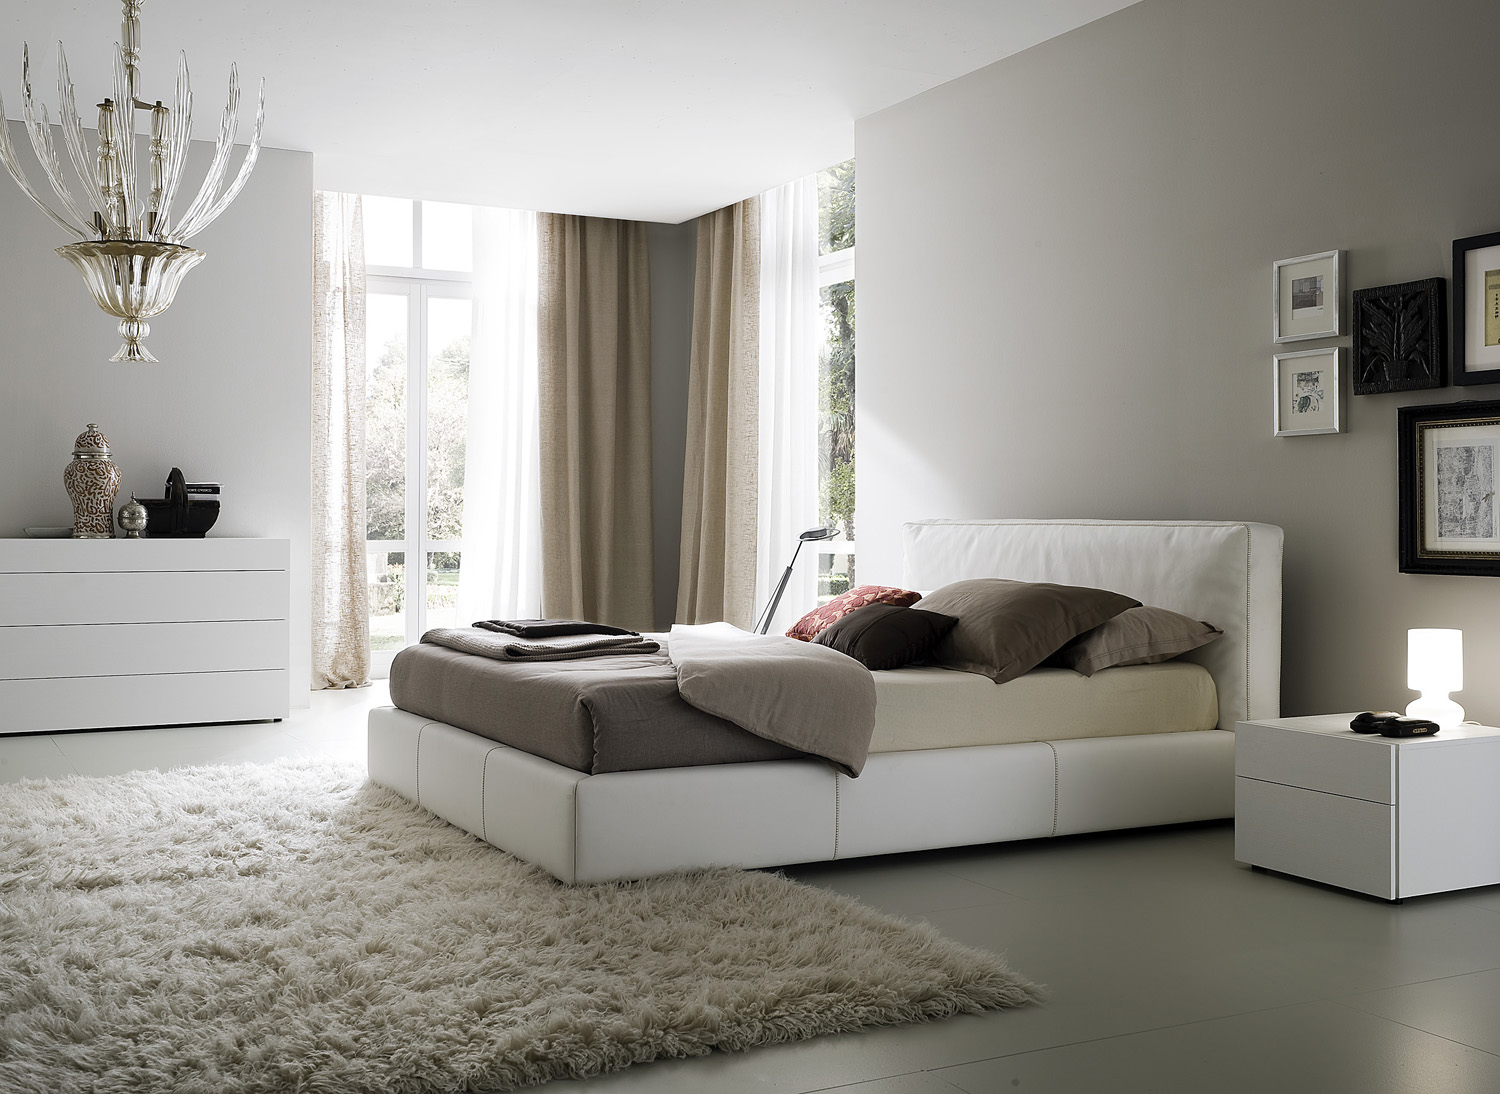 Bedroom decorating ideas from evinco for Bedroom images interior designs